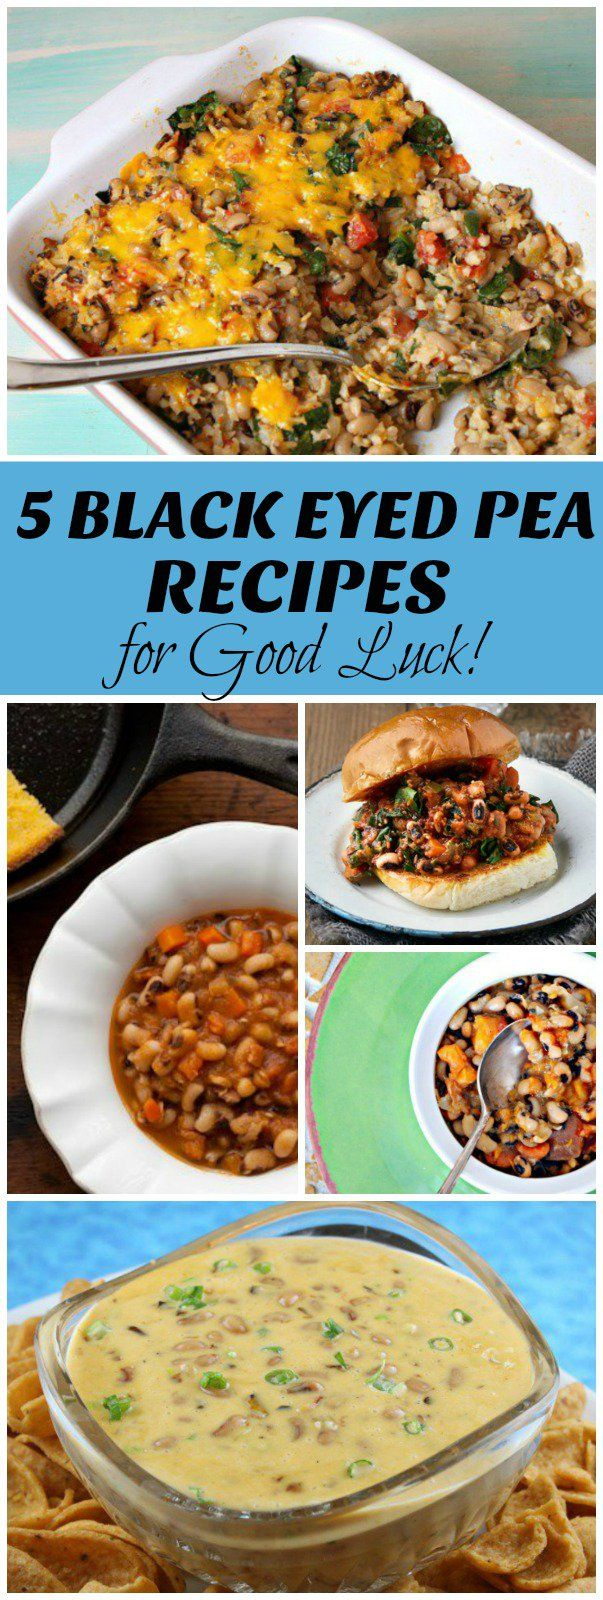 ... the New Year: black eyed pea casserole, black eyed pea dip and more